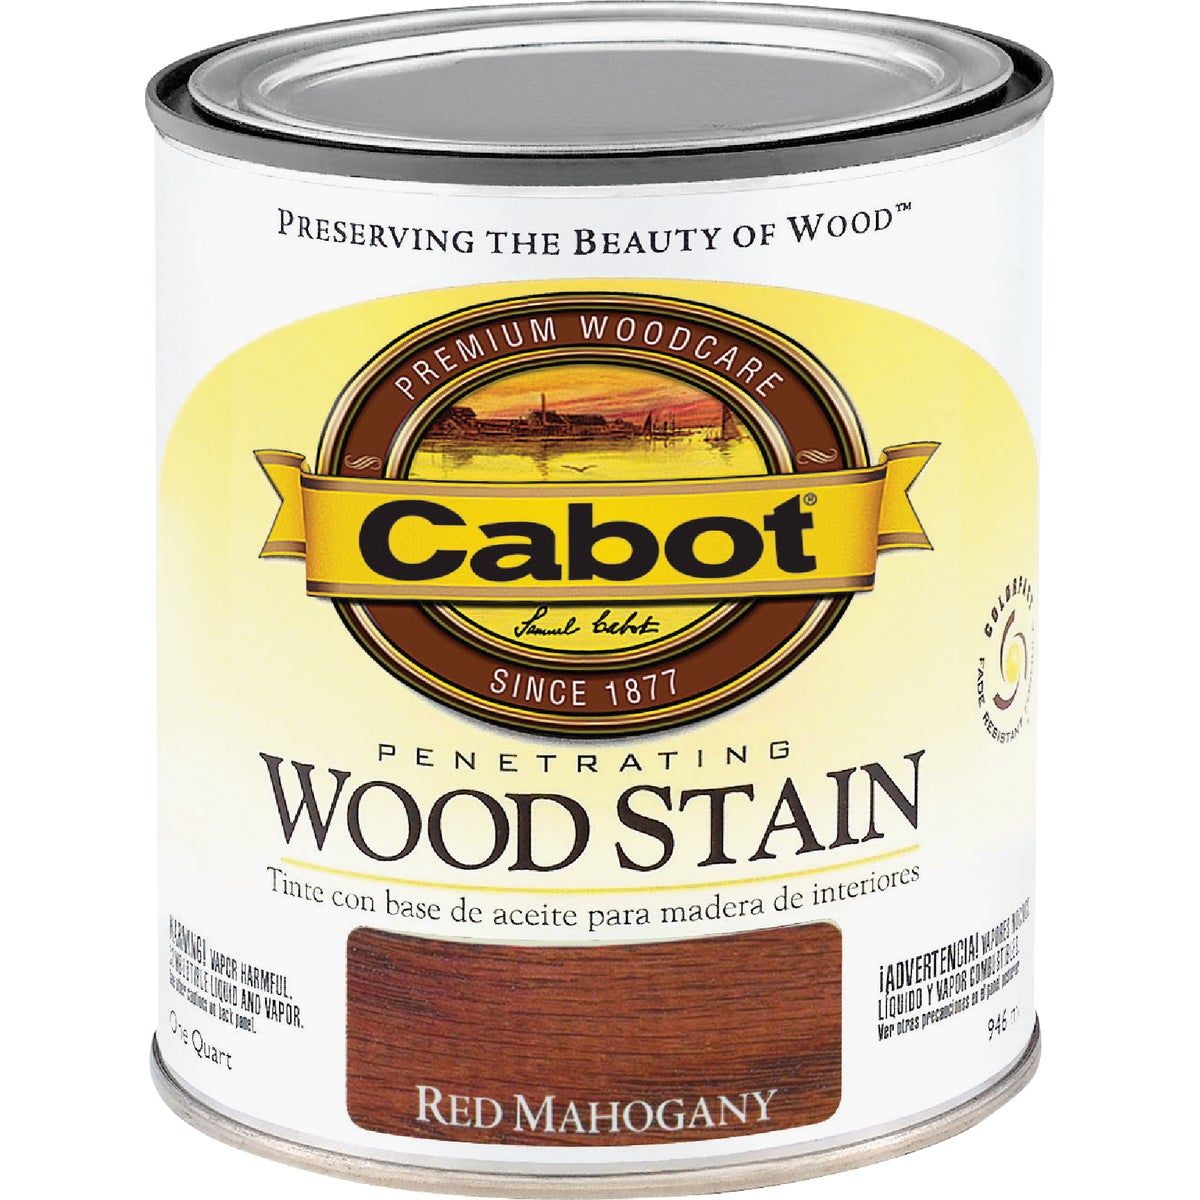 INT RED MAHOG WOOD STAIN - 144.0008131.005 by Valspar Corp